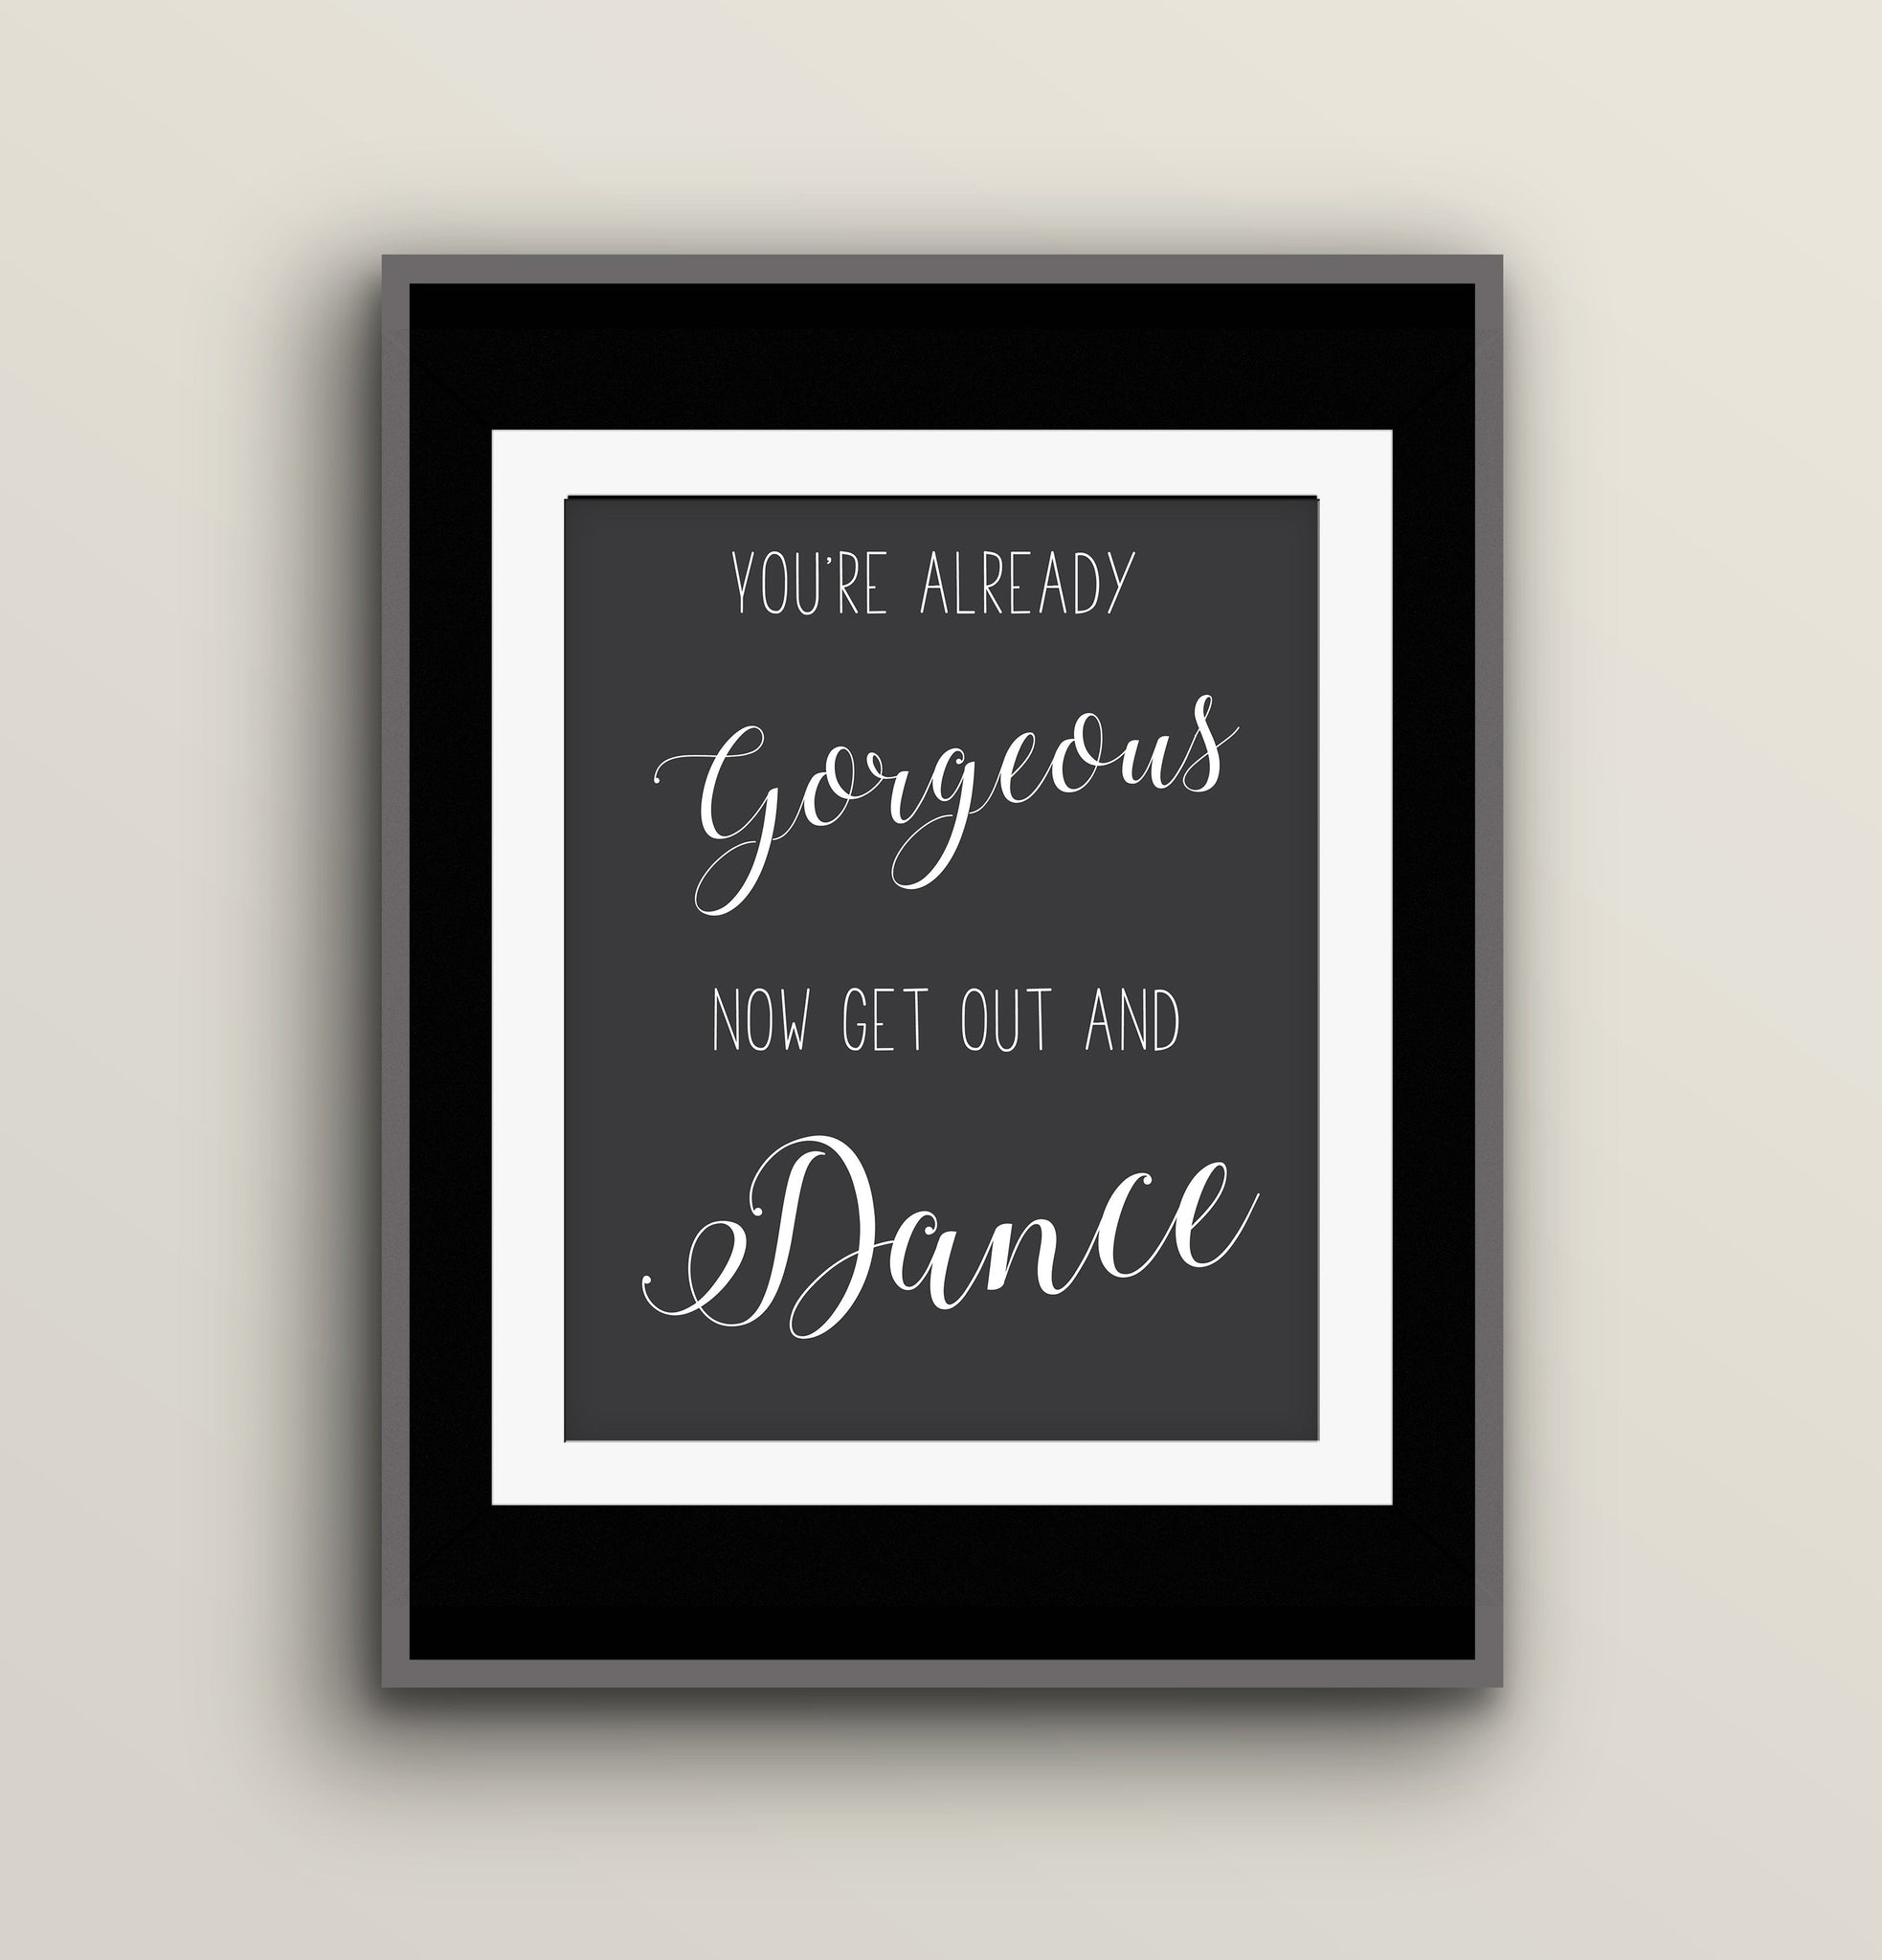 """You're already gorgeous, now get out and dance"" wedding sign"